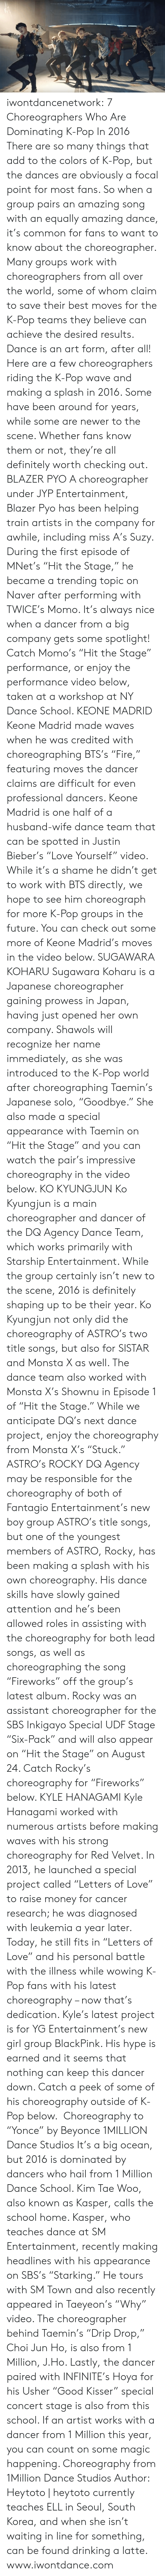 """Beyonce, Definitely, and Drinking: iwontdancenetwork:    7 Choreographers Who Are Dominating K-Pop In 2016 There are so many things that add to the colors of K-Pop, but the  dances are obviously a focal point for most fans. So when a group pairs  an amazing song with an equally amazing dance, it's common for fans to  want to know about the choreographer. Many groups work with  choreographers from all over the world, some of whom claim to save their  best moves for the K-Pop teams they believe can achieve the desired  results. Dance is an art form, after all! Here are a few choreographers riding the K-Pop wave and making a  splash in 2016. Some have been around for years, while some are newer to  the scene. Whether fans know them or not, they're all definitely worth  checking out. BLAZER PYO  A choreographer under JYP Entertainment, Blazer Pyo has been helping  train artists in the company for awhile, including miss A's Suzy. During  the first episode of MNet's """"Hit the Stage,"""" he became a trending topic  on Naver after performing with TWICE's Momo. It's always nice when a  dancer from a big company gets some spotlight! Catch Momo's """"Hit the  Stage"""" performance, or enjoy the performance video below, taken at a  workshop at NY Dance School.  KEONE MADRID  Keone Madrid made waves when he was credited with choreographing BTS's  """"Fire,"""" featuring moves the dancer claims are difficult for even  professional dancers. Keone Madrid is one half of a husband-wife dance  team that can be spotted in Justin Bieber's """"Love Yourself"""" video. While  it's a shame he didn't get to work with BTS directly, we hope to see  him choreograph for more K-Pop groups in the future. You can check out  some more of Keone Madrid's moves in the video below.   SUGAWARA KOHARU  Sugawara Koharu is a Japanese choreographer gaining prowess in Japan,  having just opened her own company. Shawols will recognize her name  immediately, as she was introduced to the K-Pop world after  choreographing Taemin's Ja"""